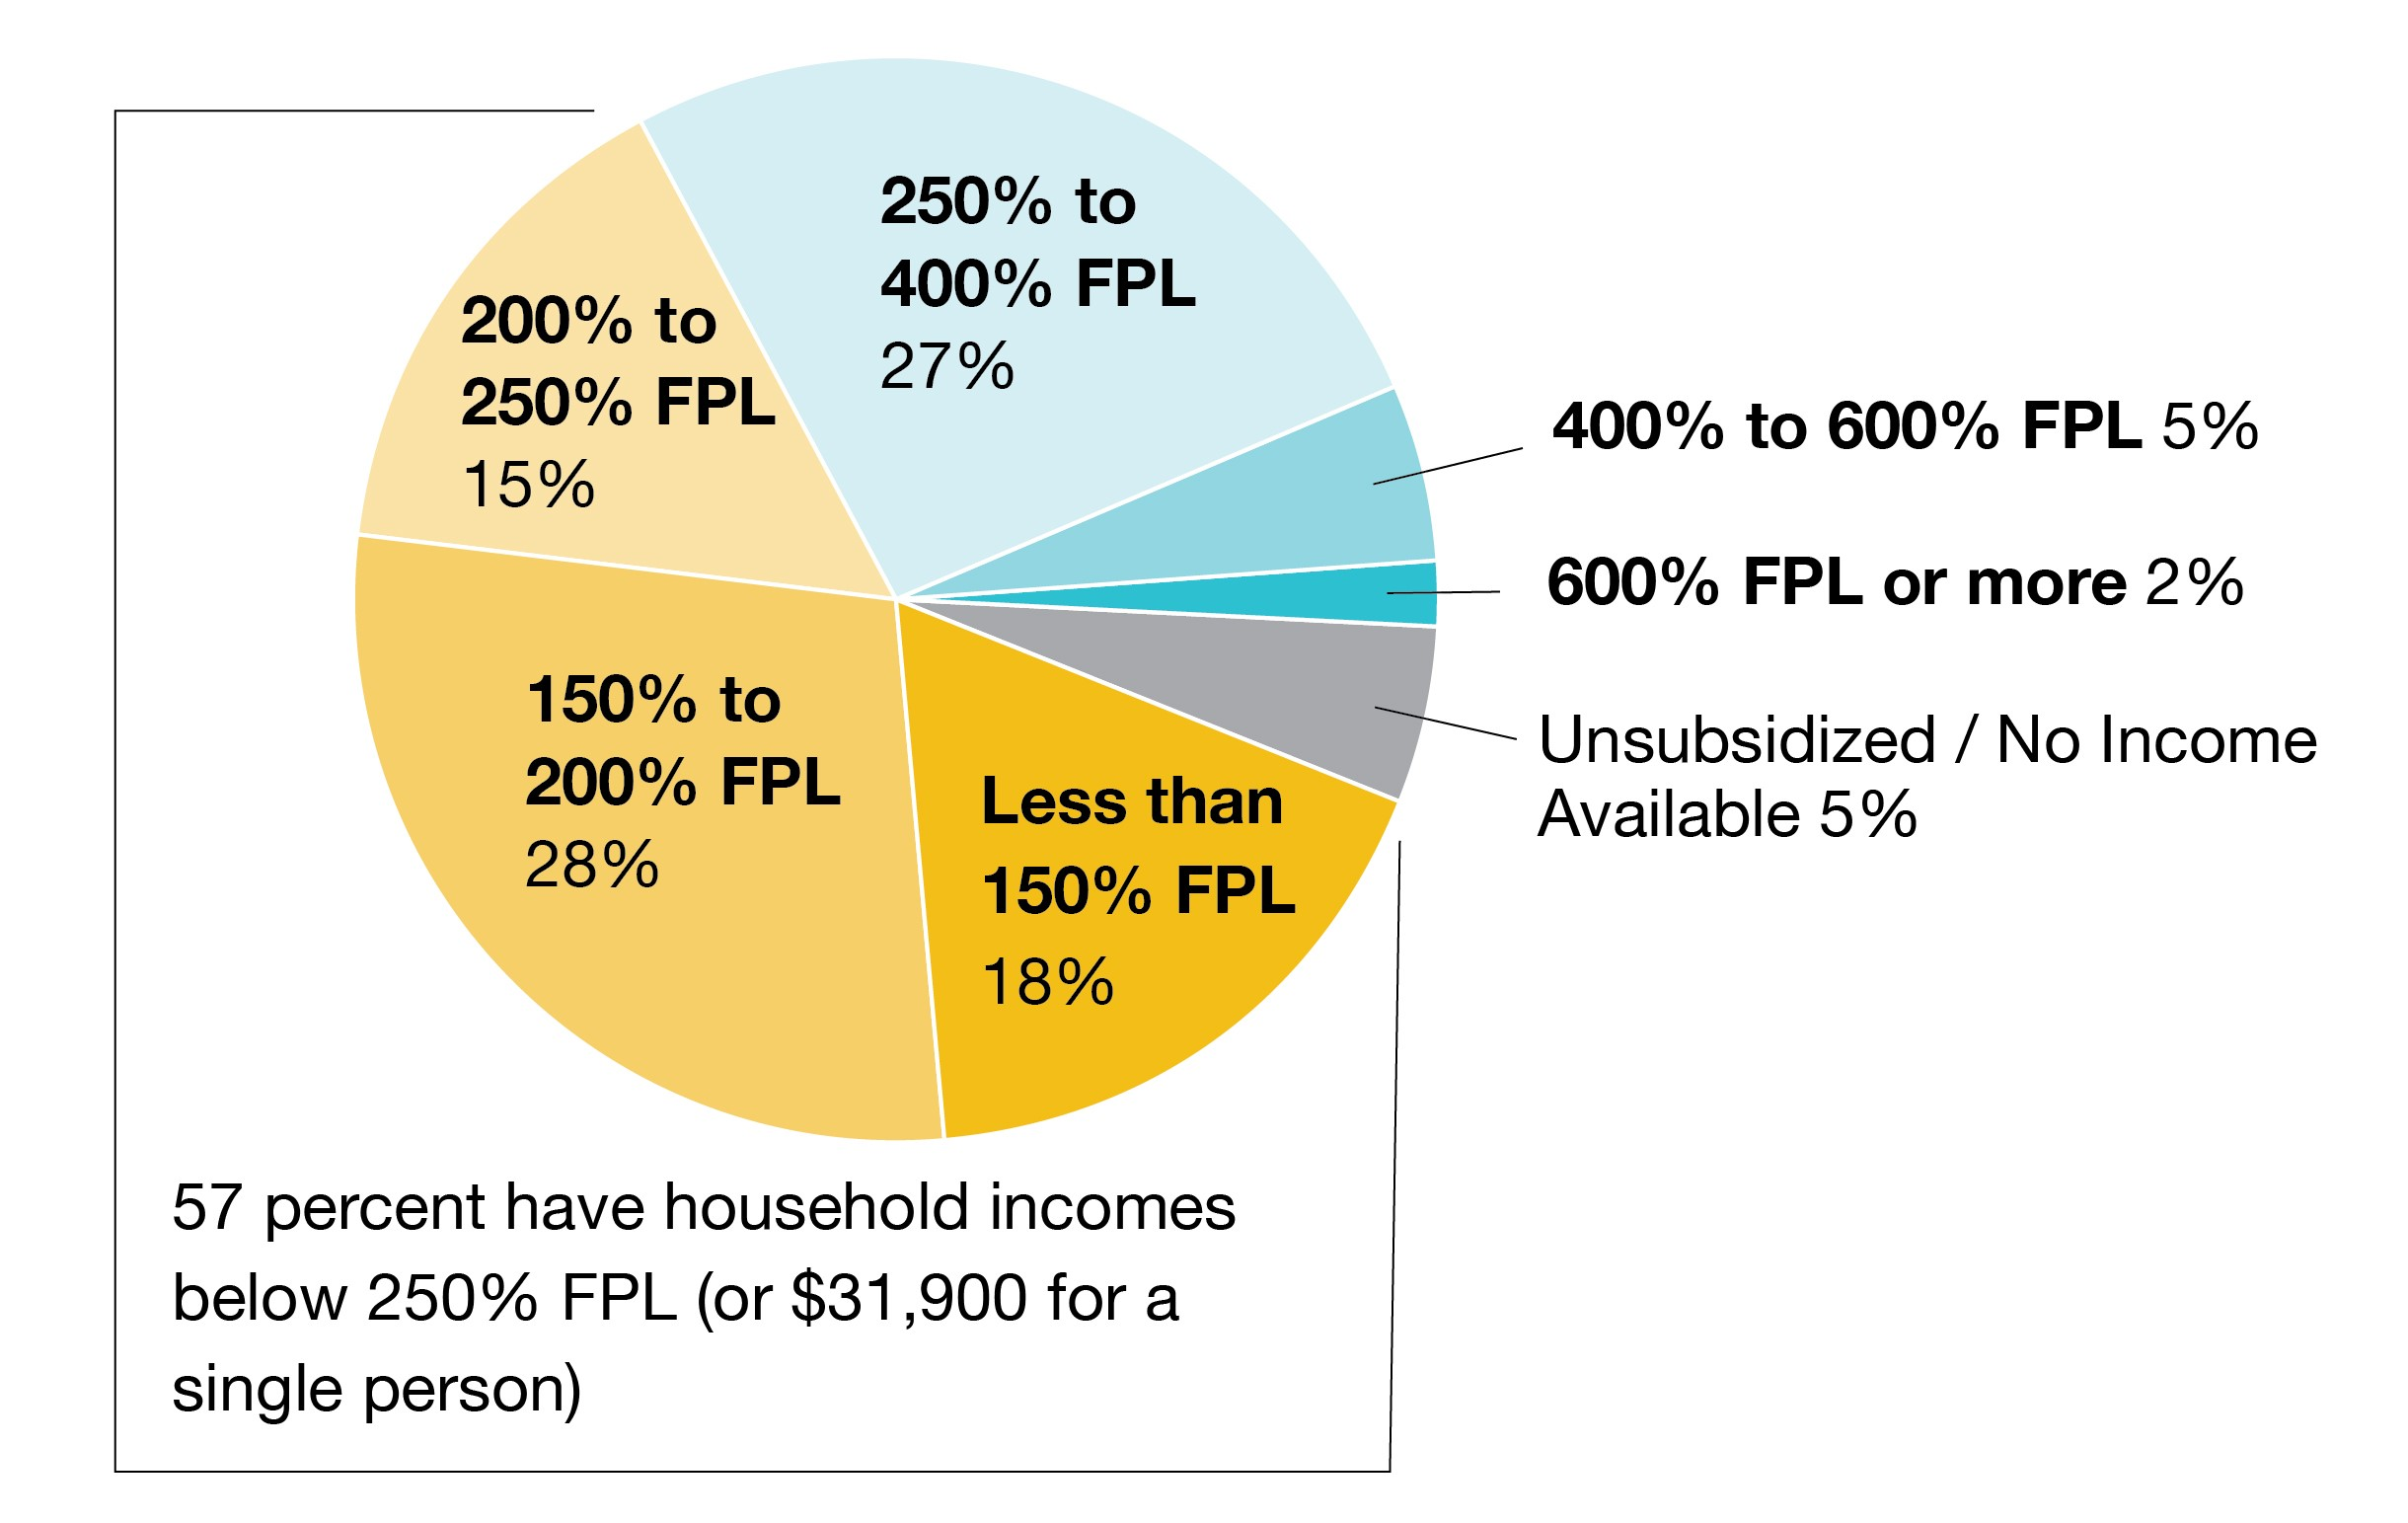 Plan selections by income